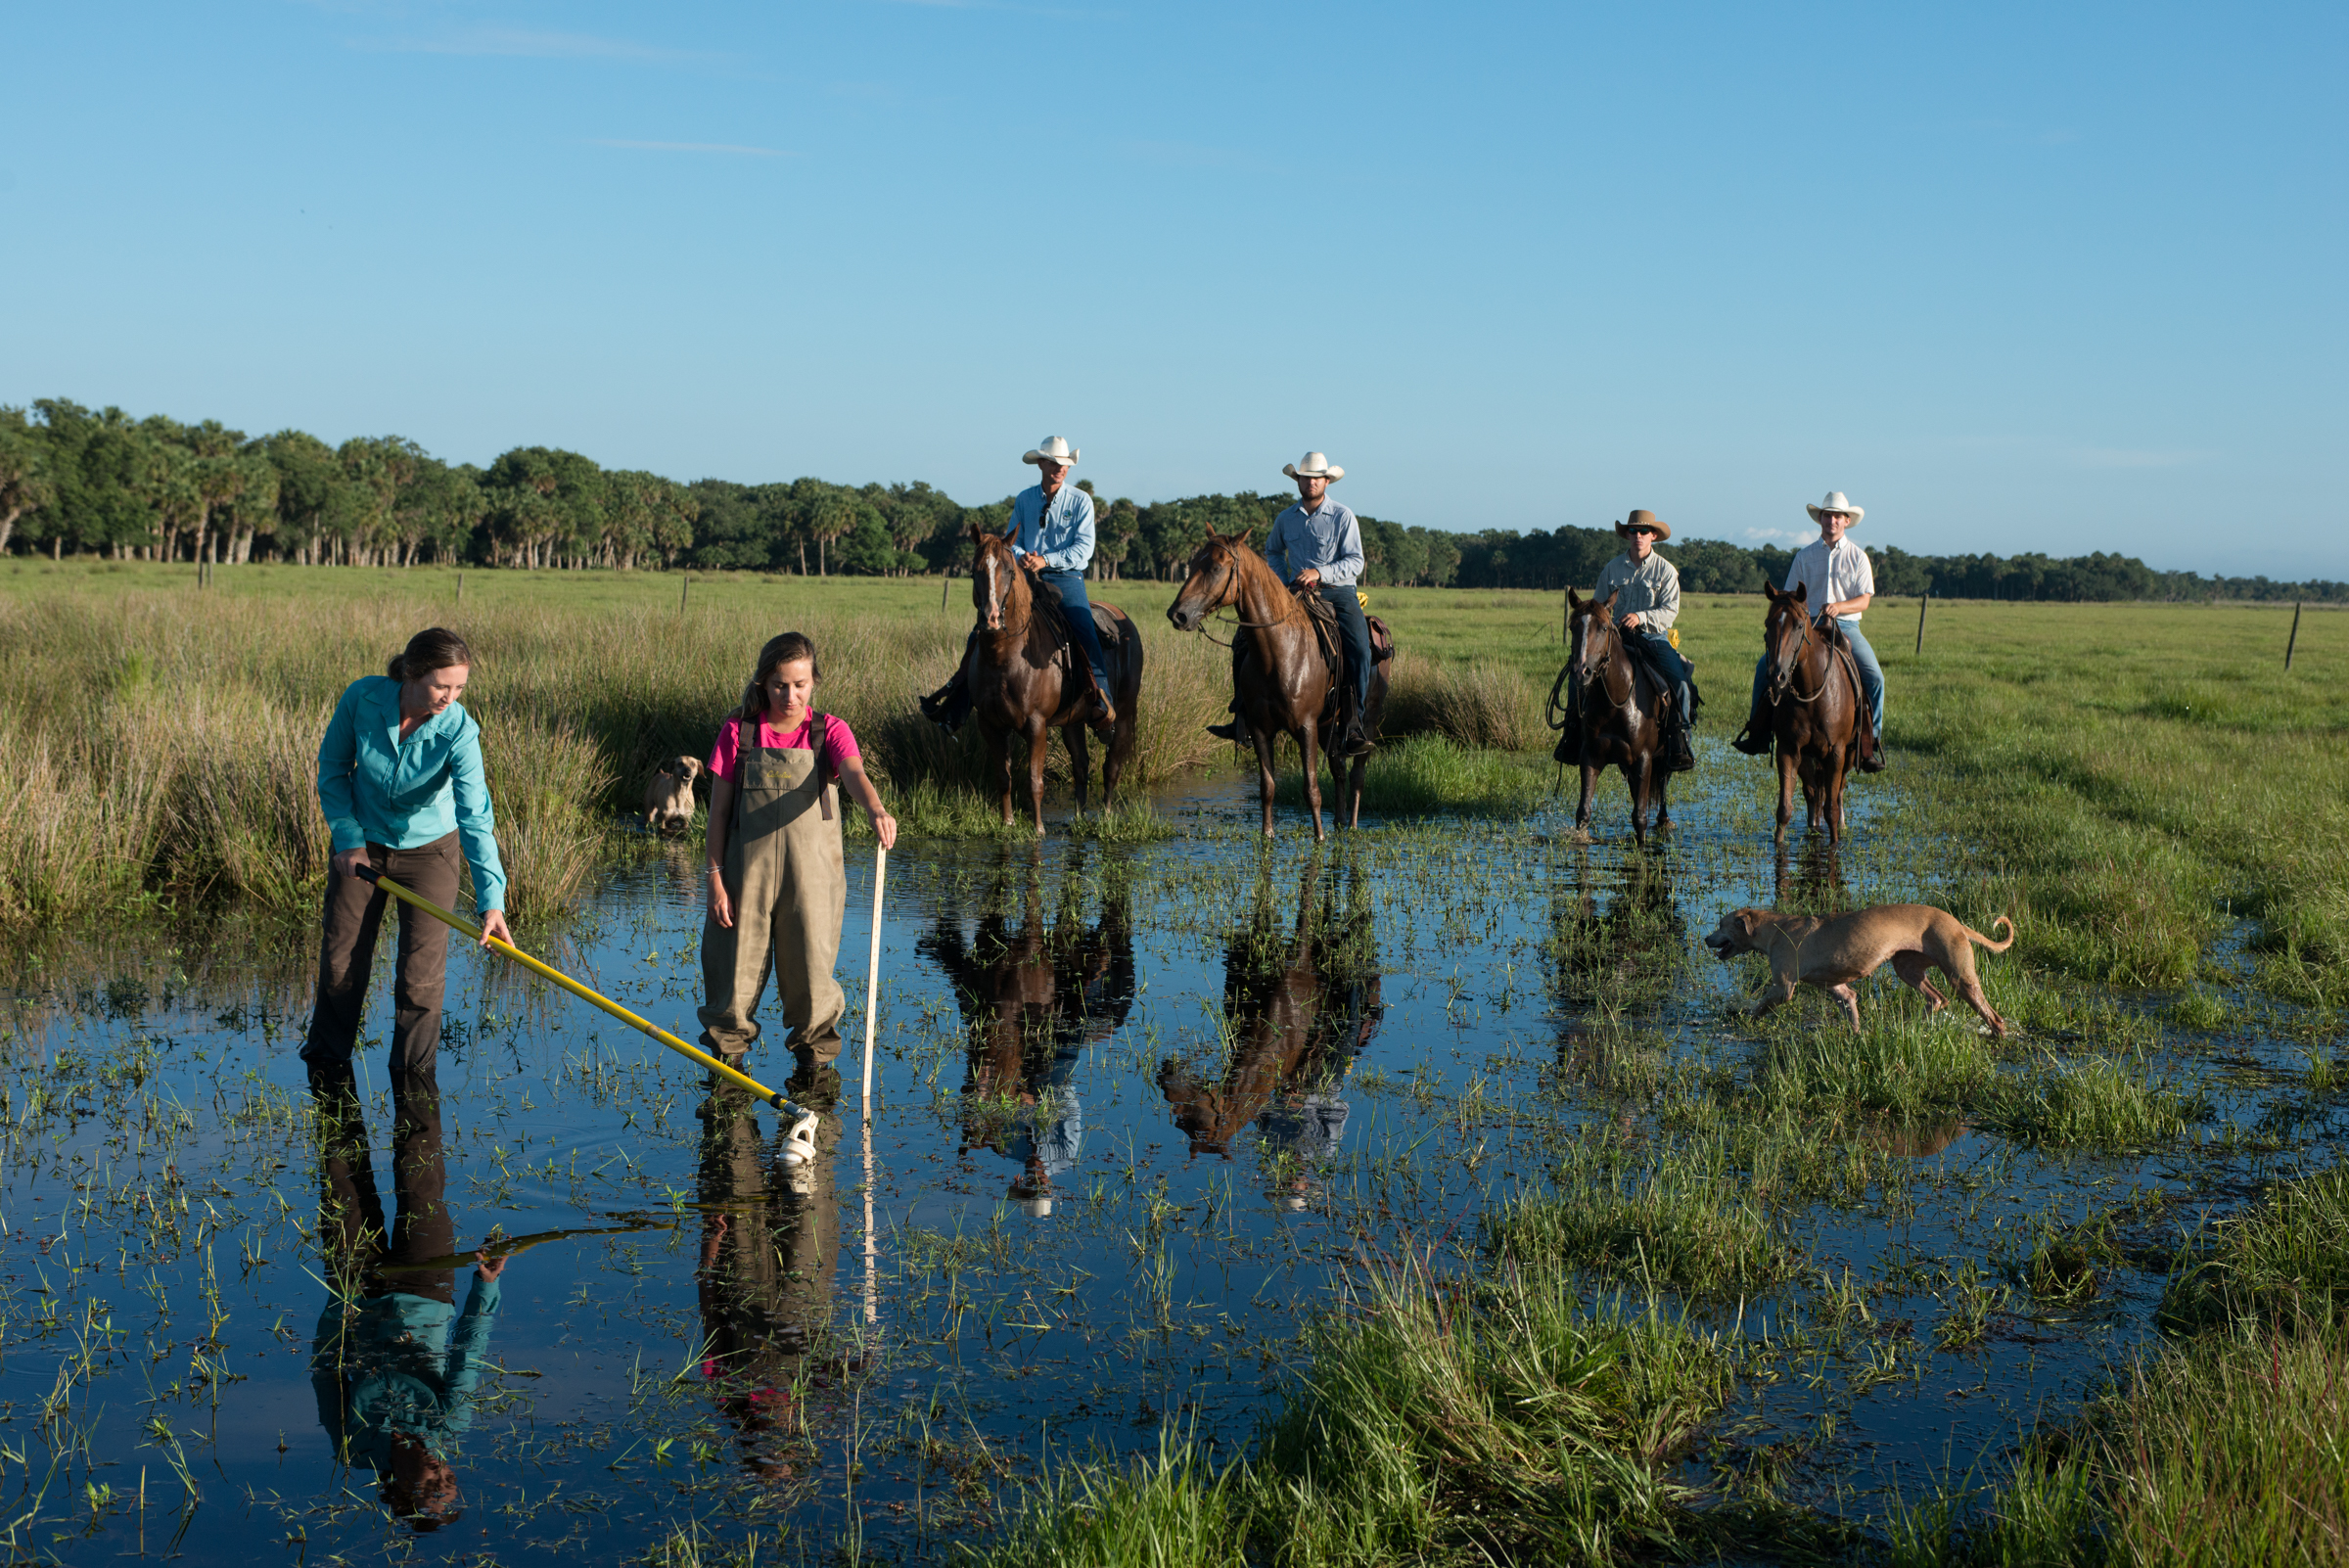 Ecologist Betsey Boughton (in blue) takes water and core samples from a wetland on Buck Island Ranch, while ranch foreman Gene Lollis and his cow crew look on.